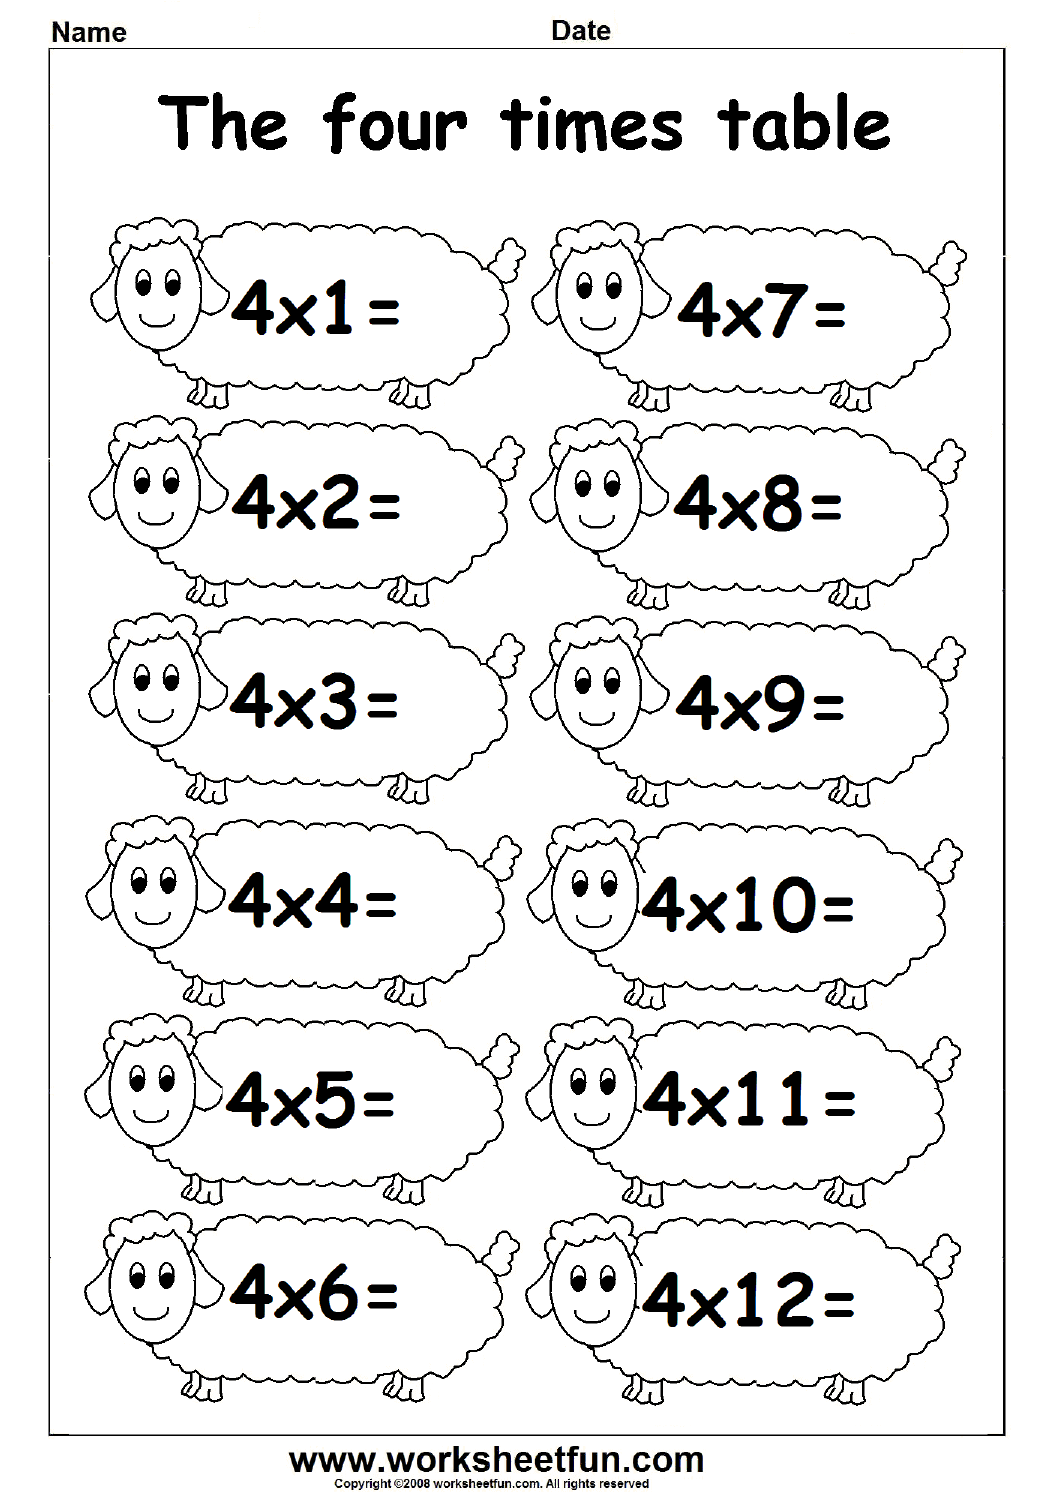 Fun Times Table Worksheets 2 3 4 – Multiplication Facts Test Worksheet